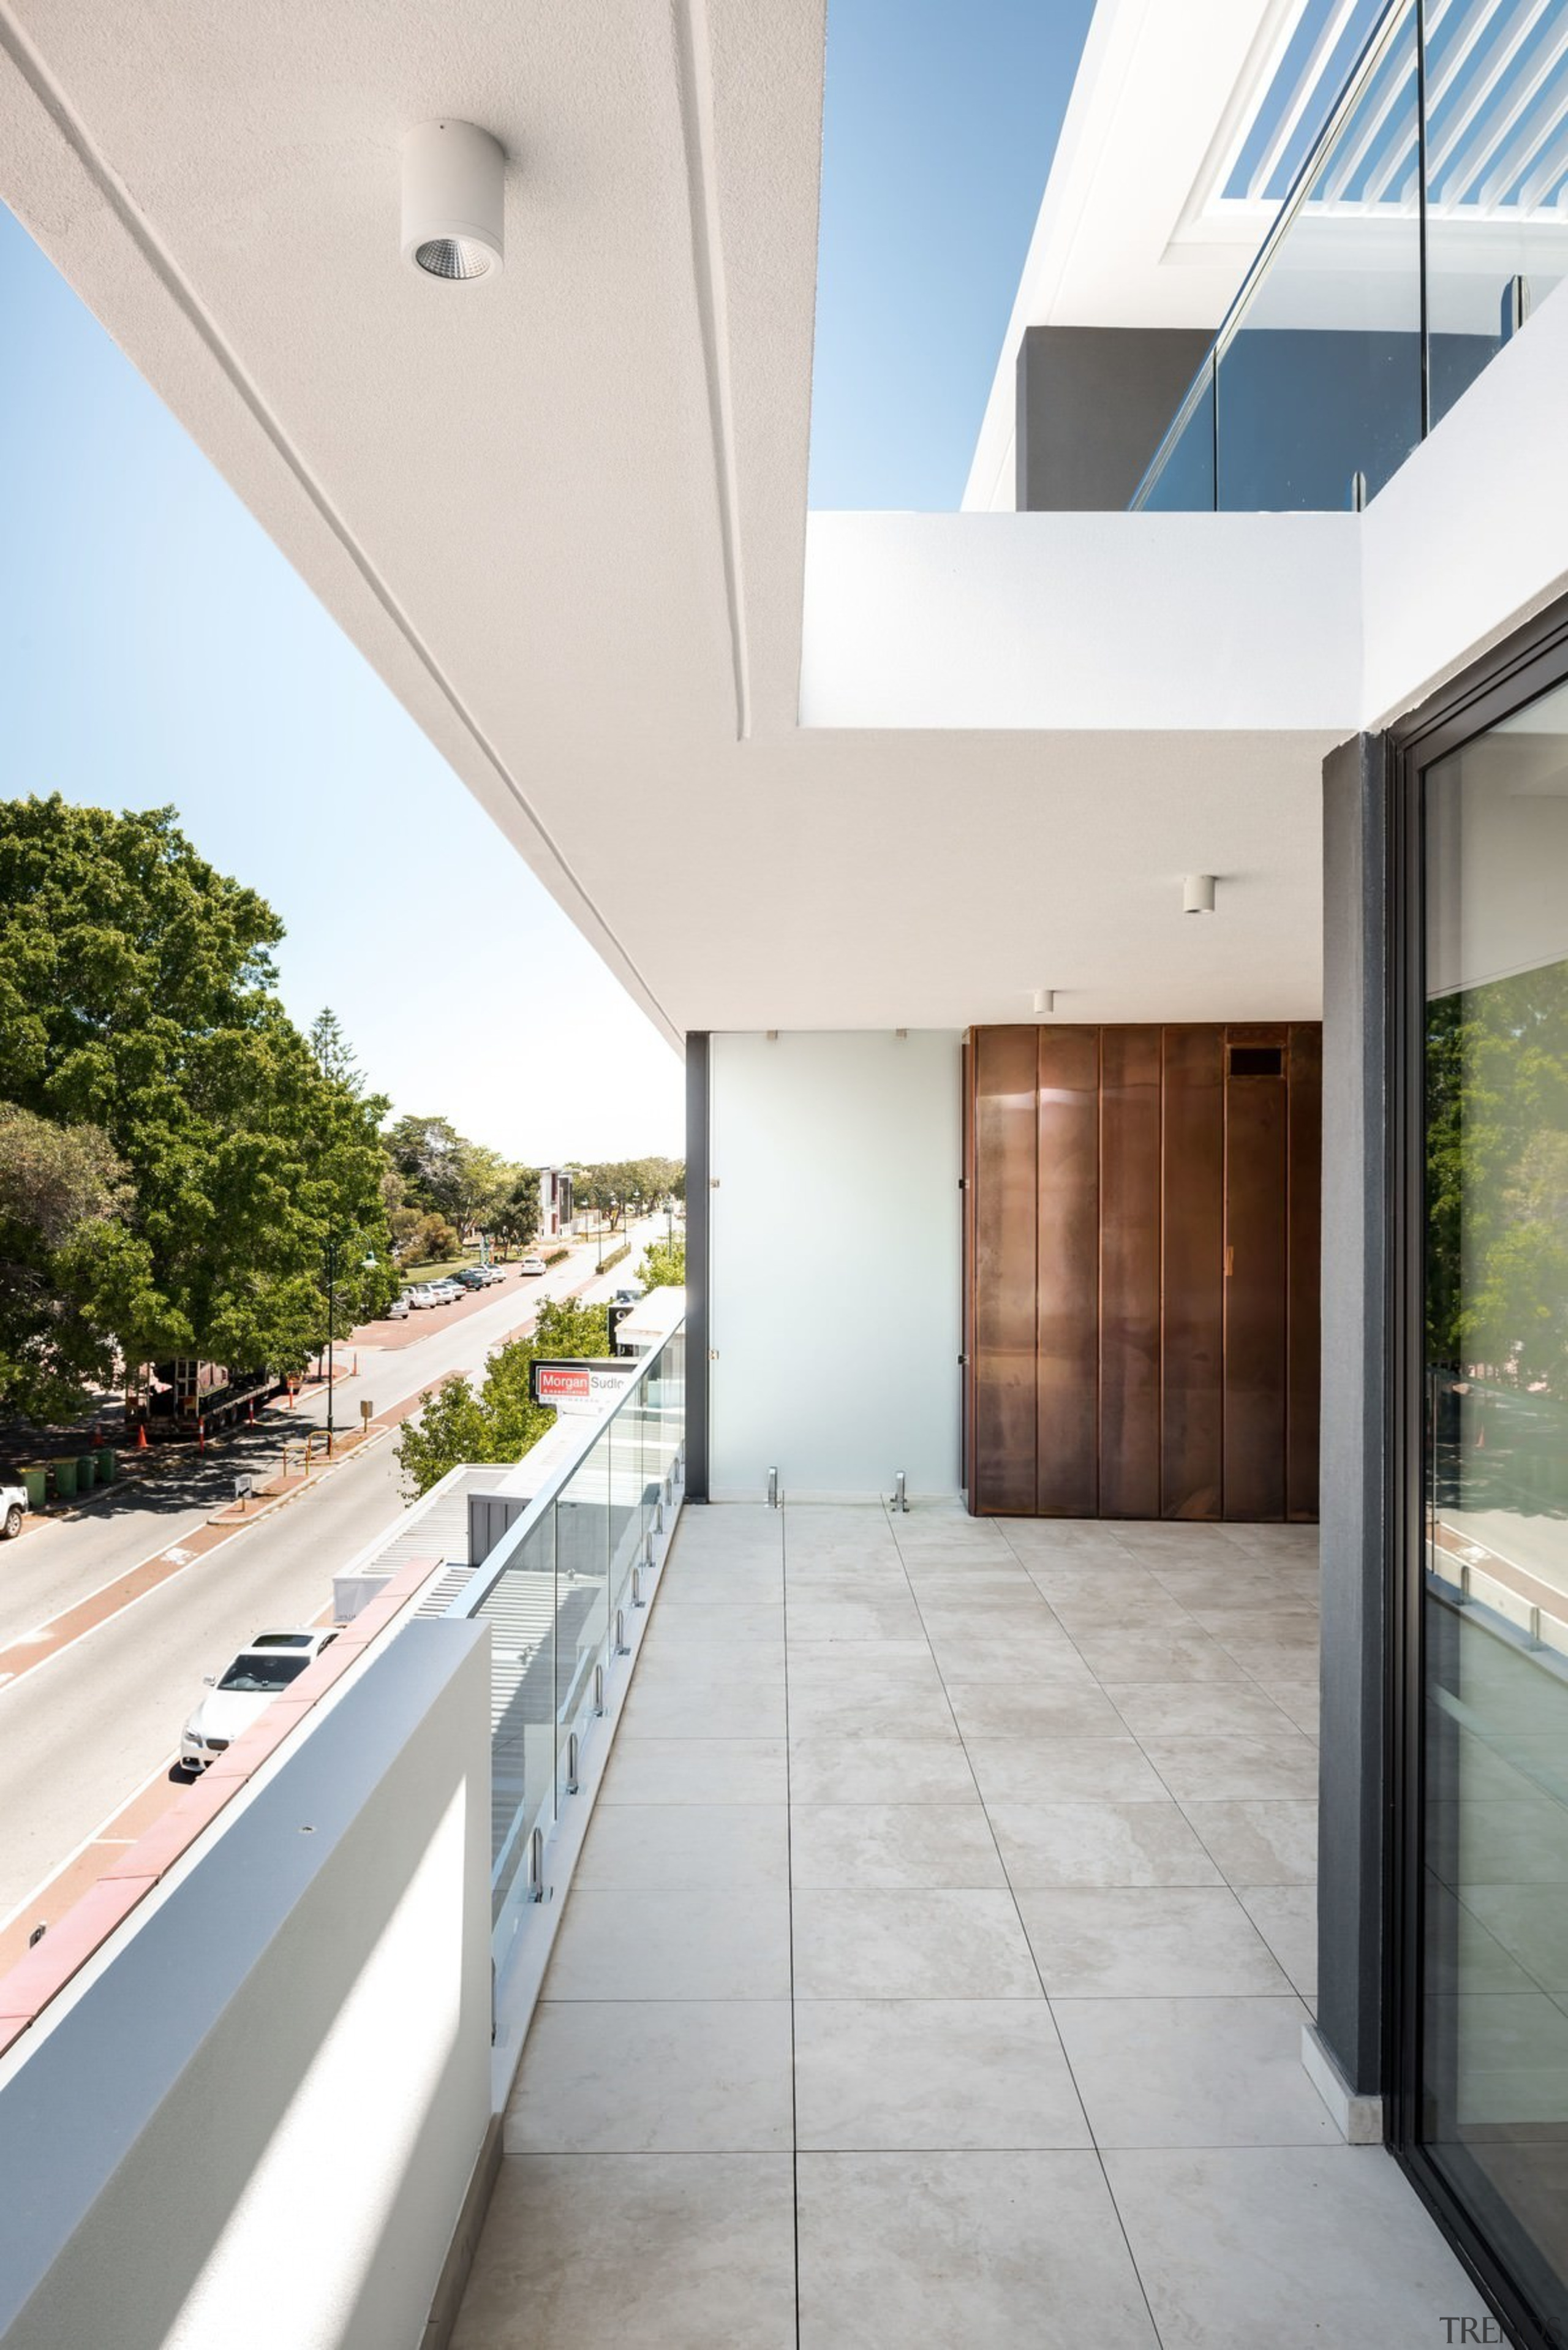 There's a view from the balustrade above to apartment, architecture, condominium, daylighting, estate, floor, home, house, interior design, property, real estate, window, white